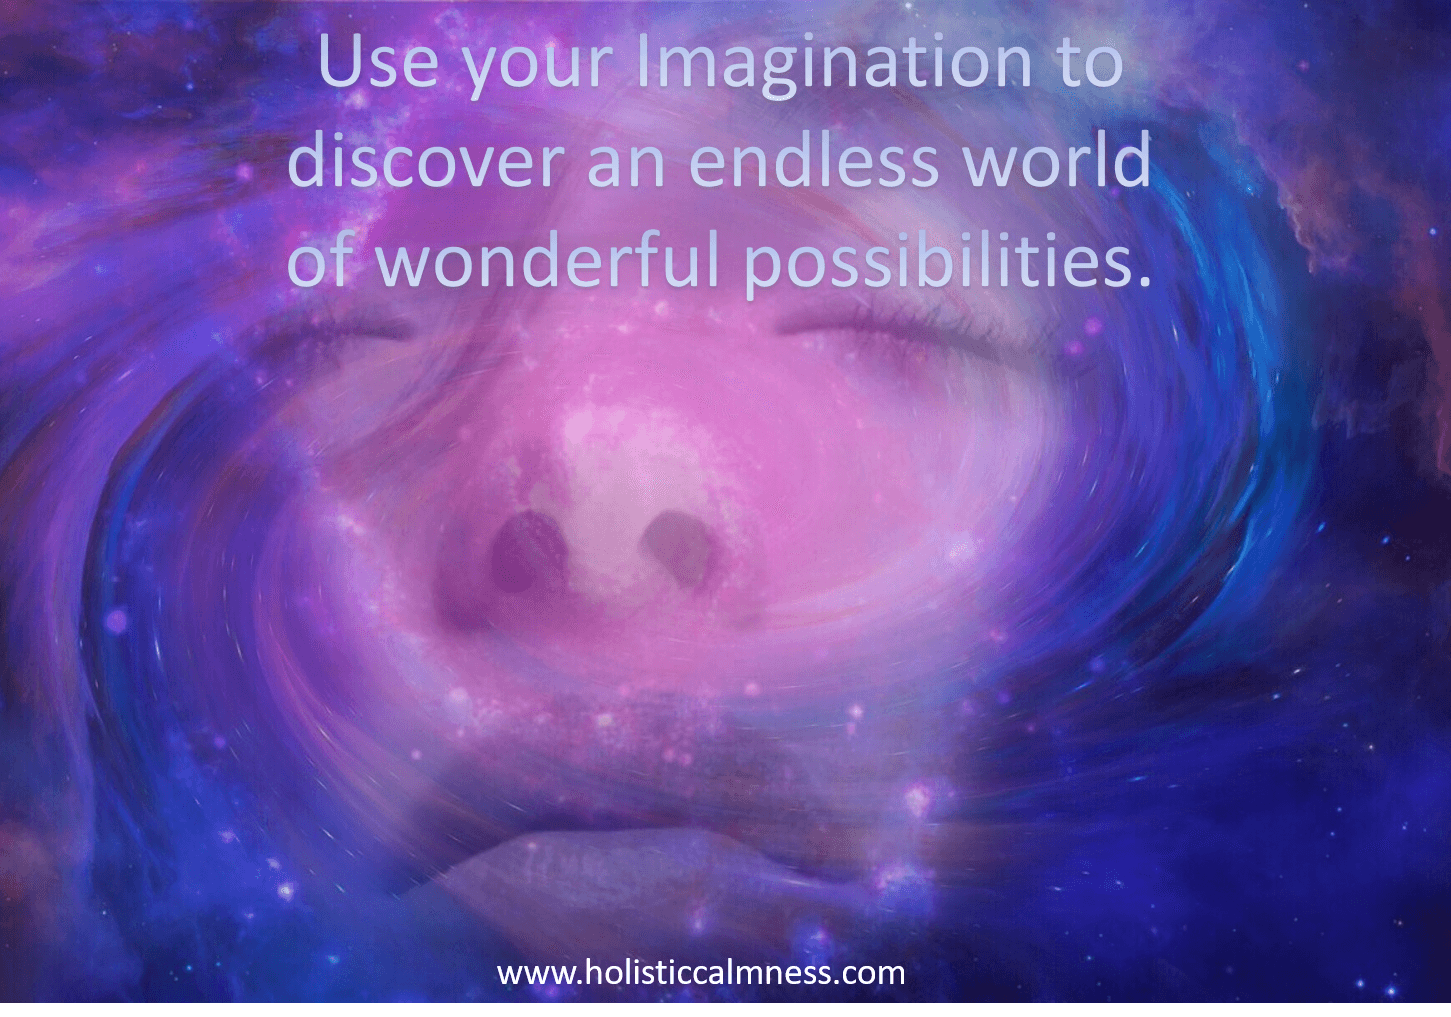 Guided imagery to relieve stress and anxiety